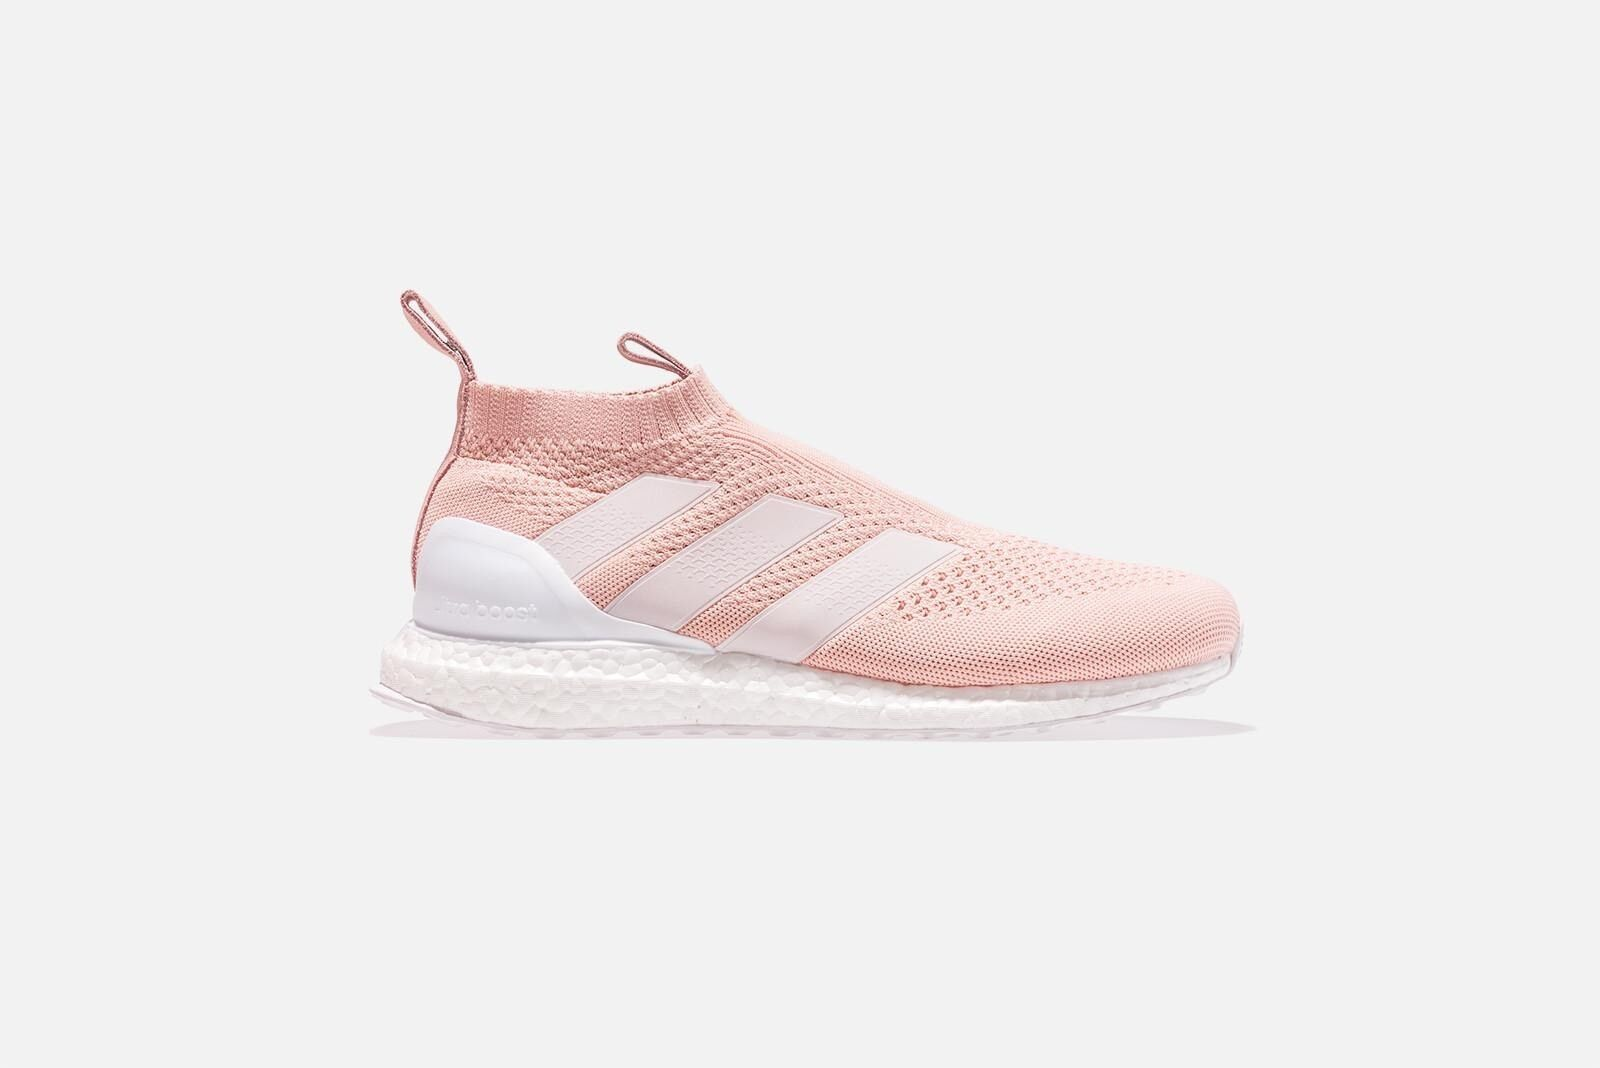 detailed look b1a9a 10310 New Brand DS ACE 9.5 Flamingos UltraBOOST Purecontrol 16+ ...